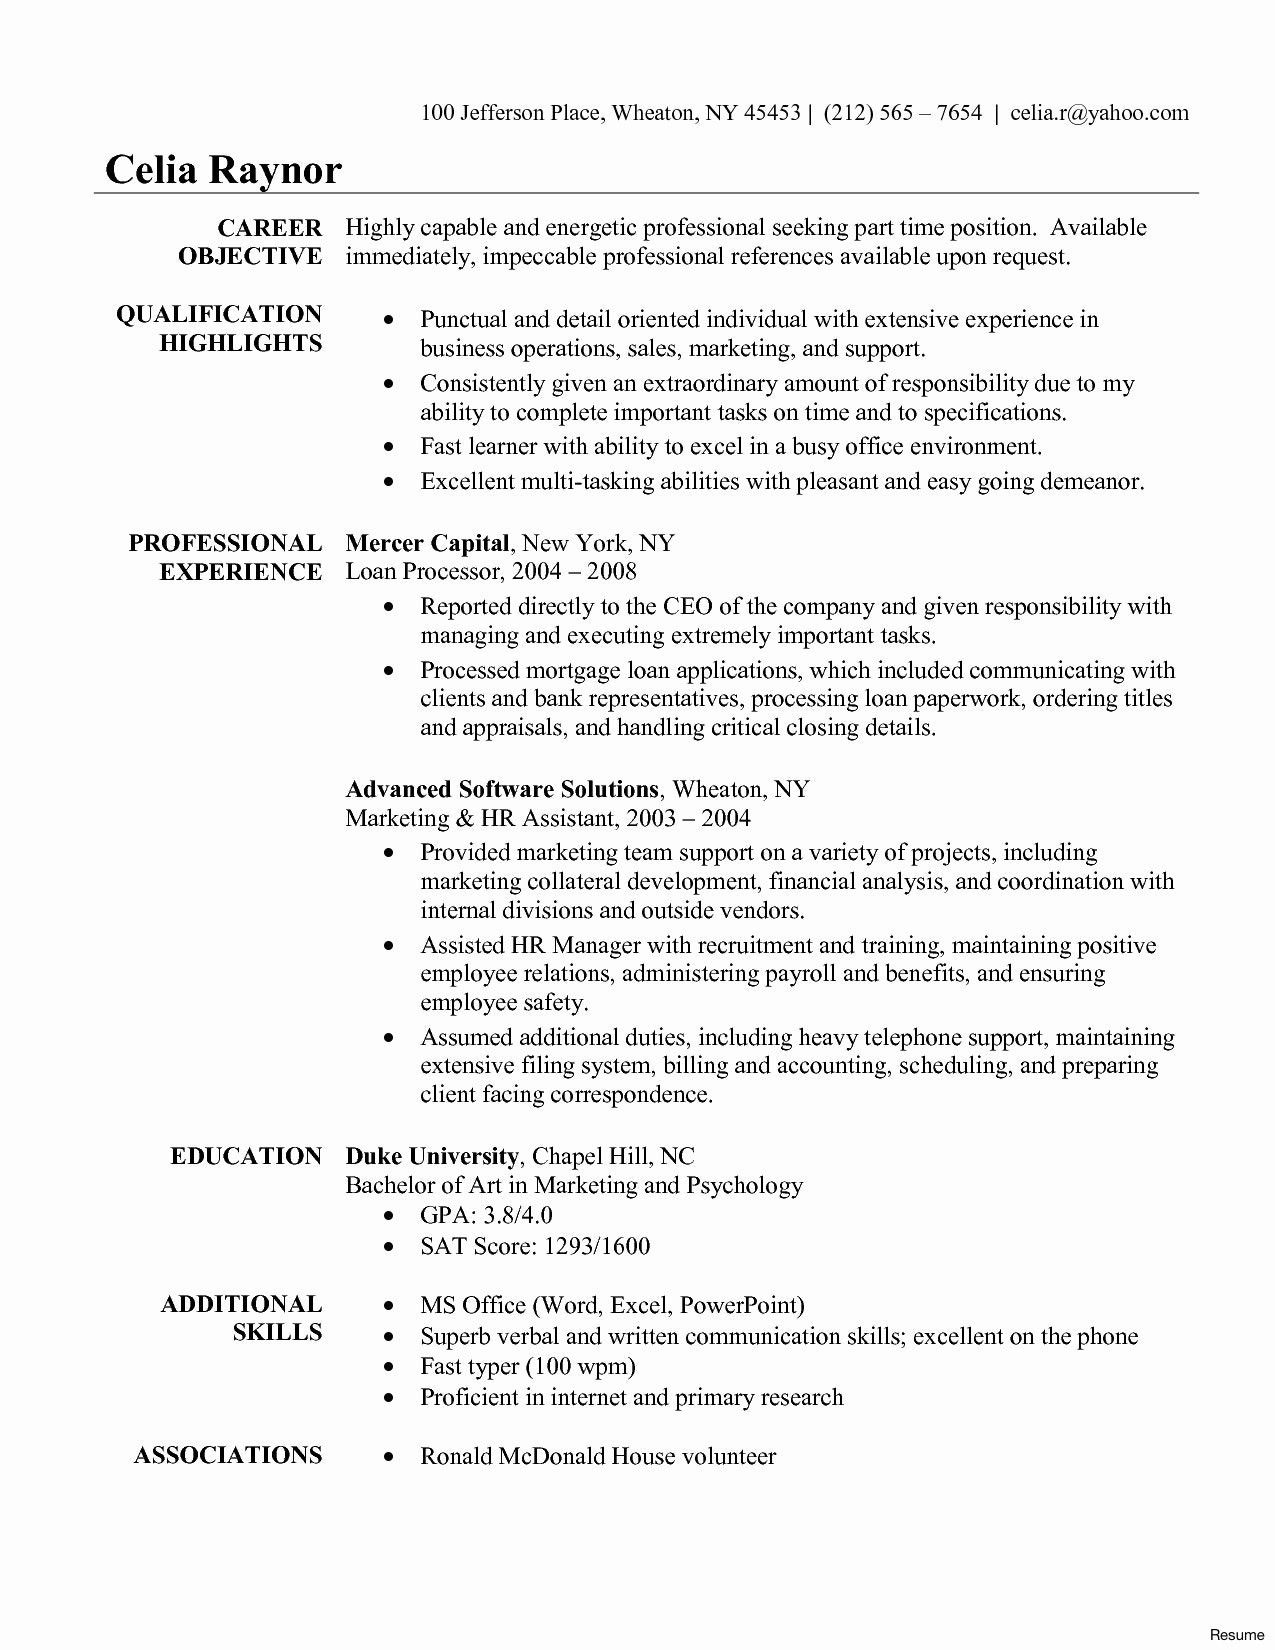 law student resume template example-Individual Development Unique Law Student Resume Template Best Resume Examples 0d 2-c